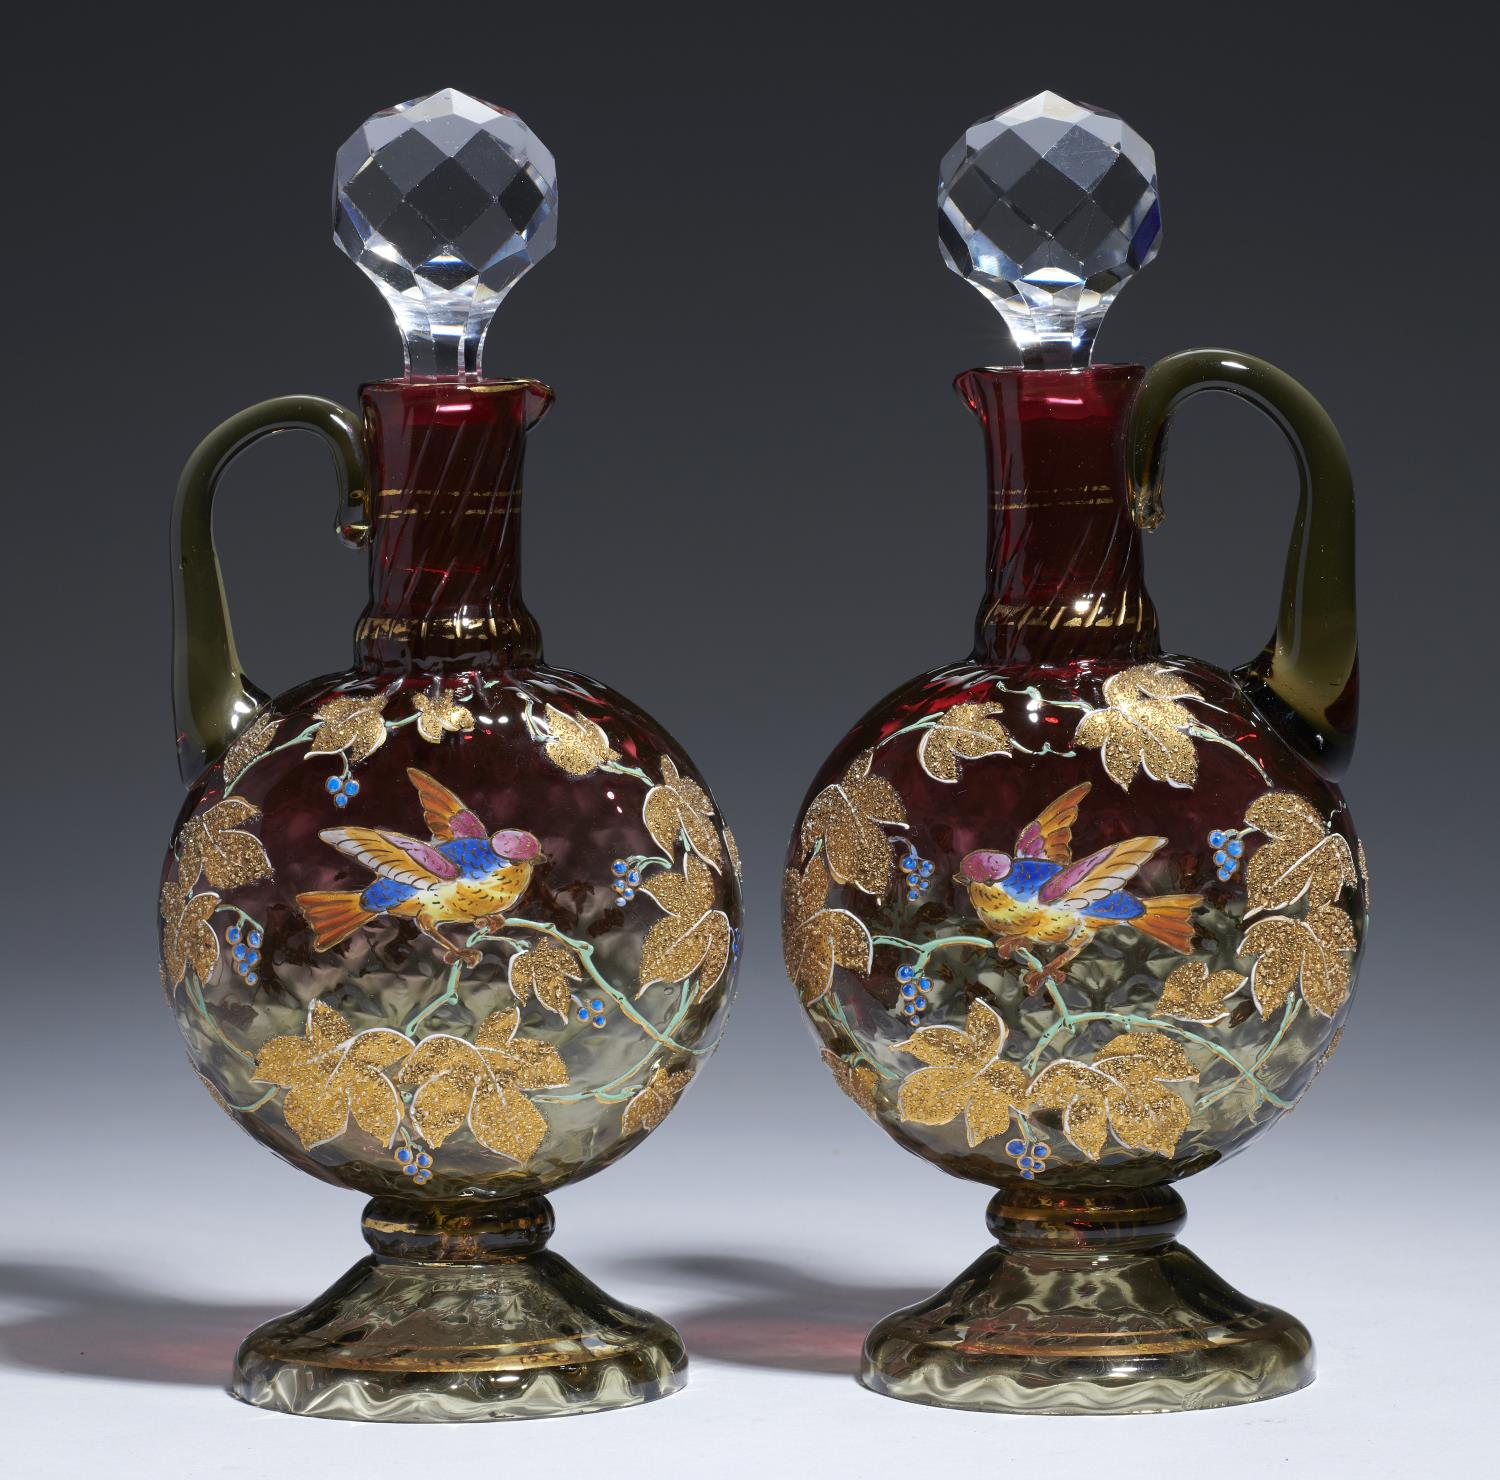 Lot 376 - A PAIR OF MOSER ENAMELLED AND GILT WRYTHEN FLUTED AND SHADED CRANBERRY GLASS DECANTERS, EARLY 20TH C